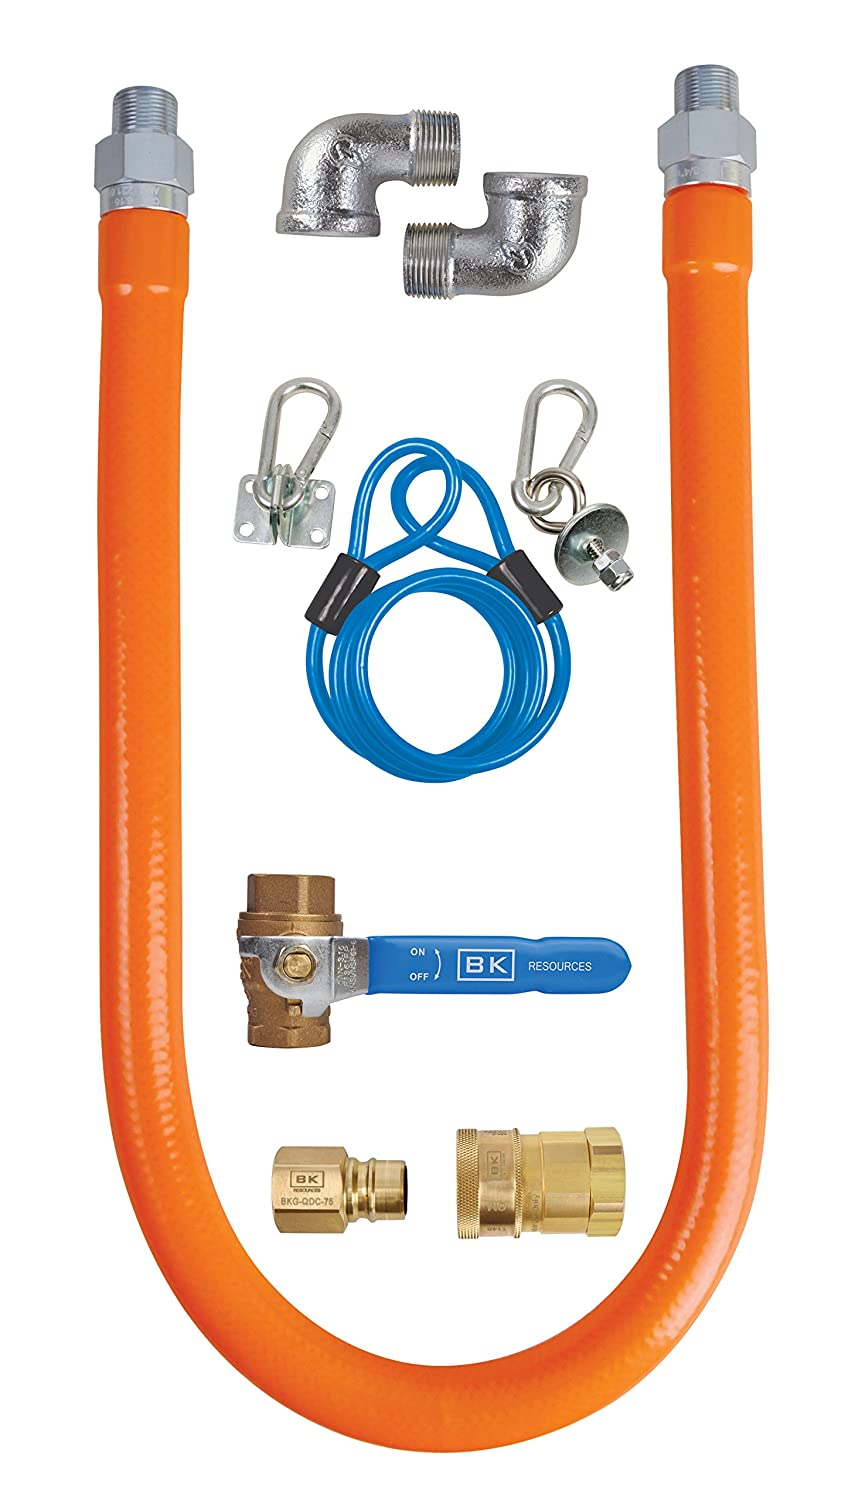 1//2 Inch Diameter BK Resources Gas Hose Connection Kit #3 with Accessories 48 Inch Long Hose BKG-GHC-5048-SCK3